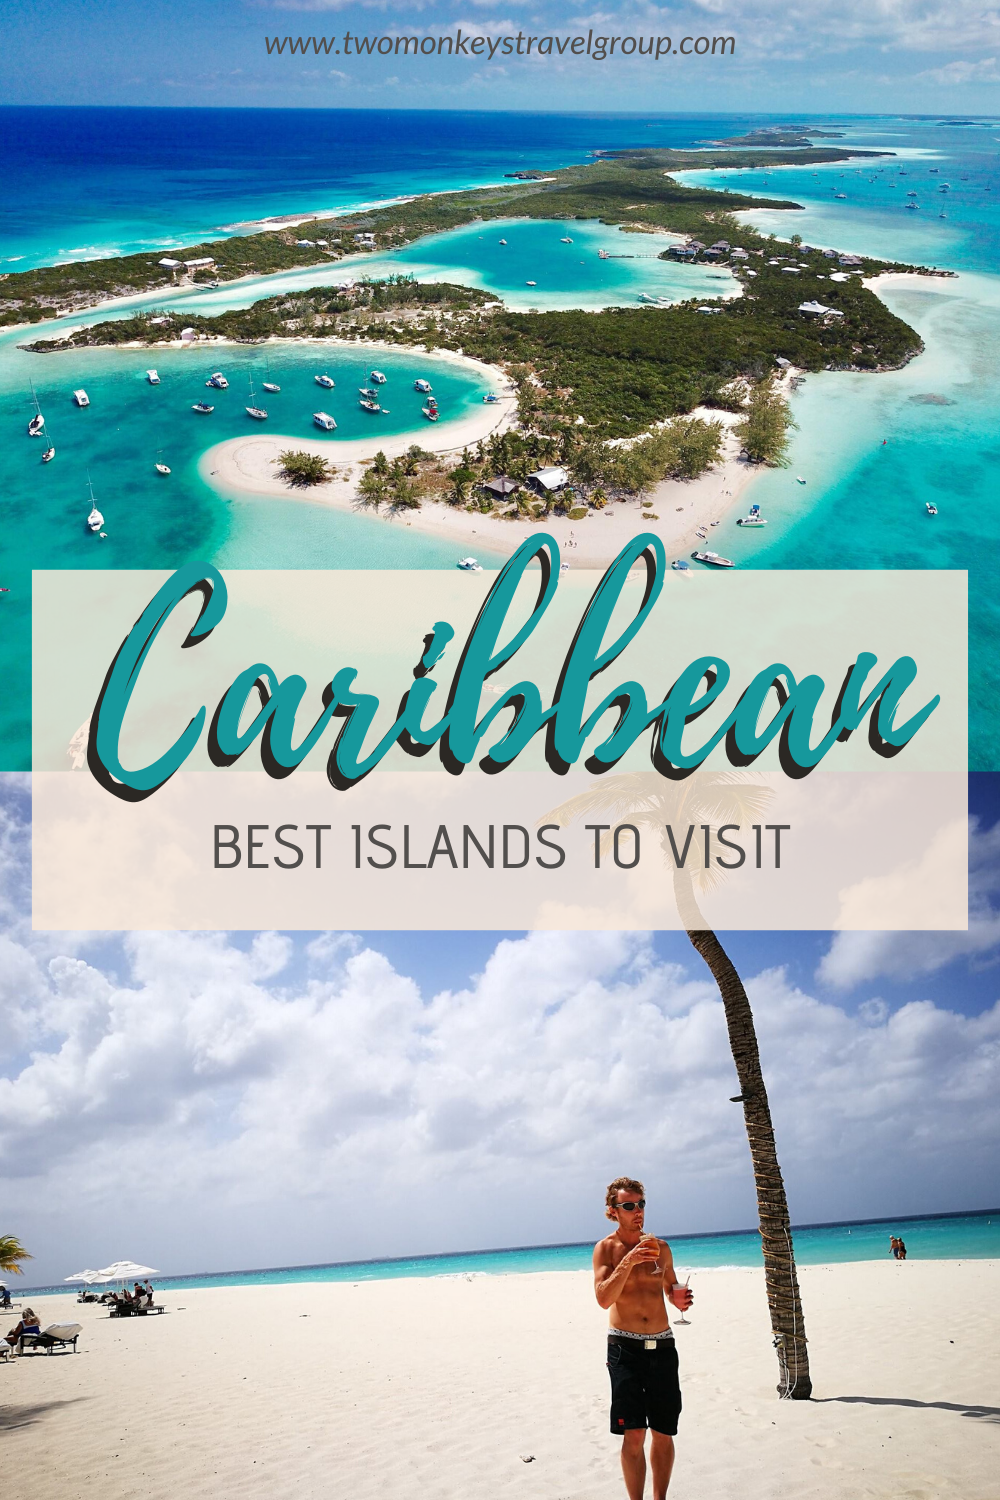 25 Best Islands in the Caribbean To Visit [With Photos and Travel Tips]